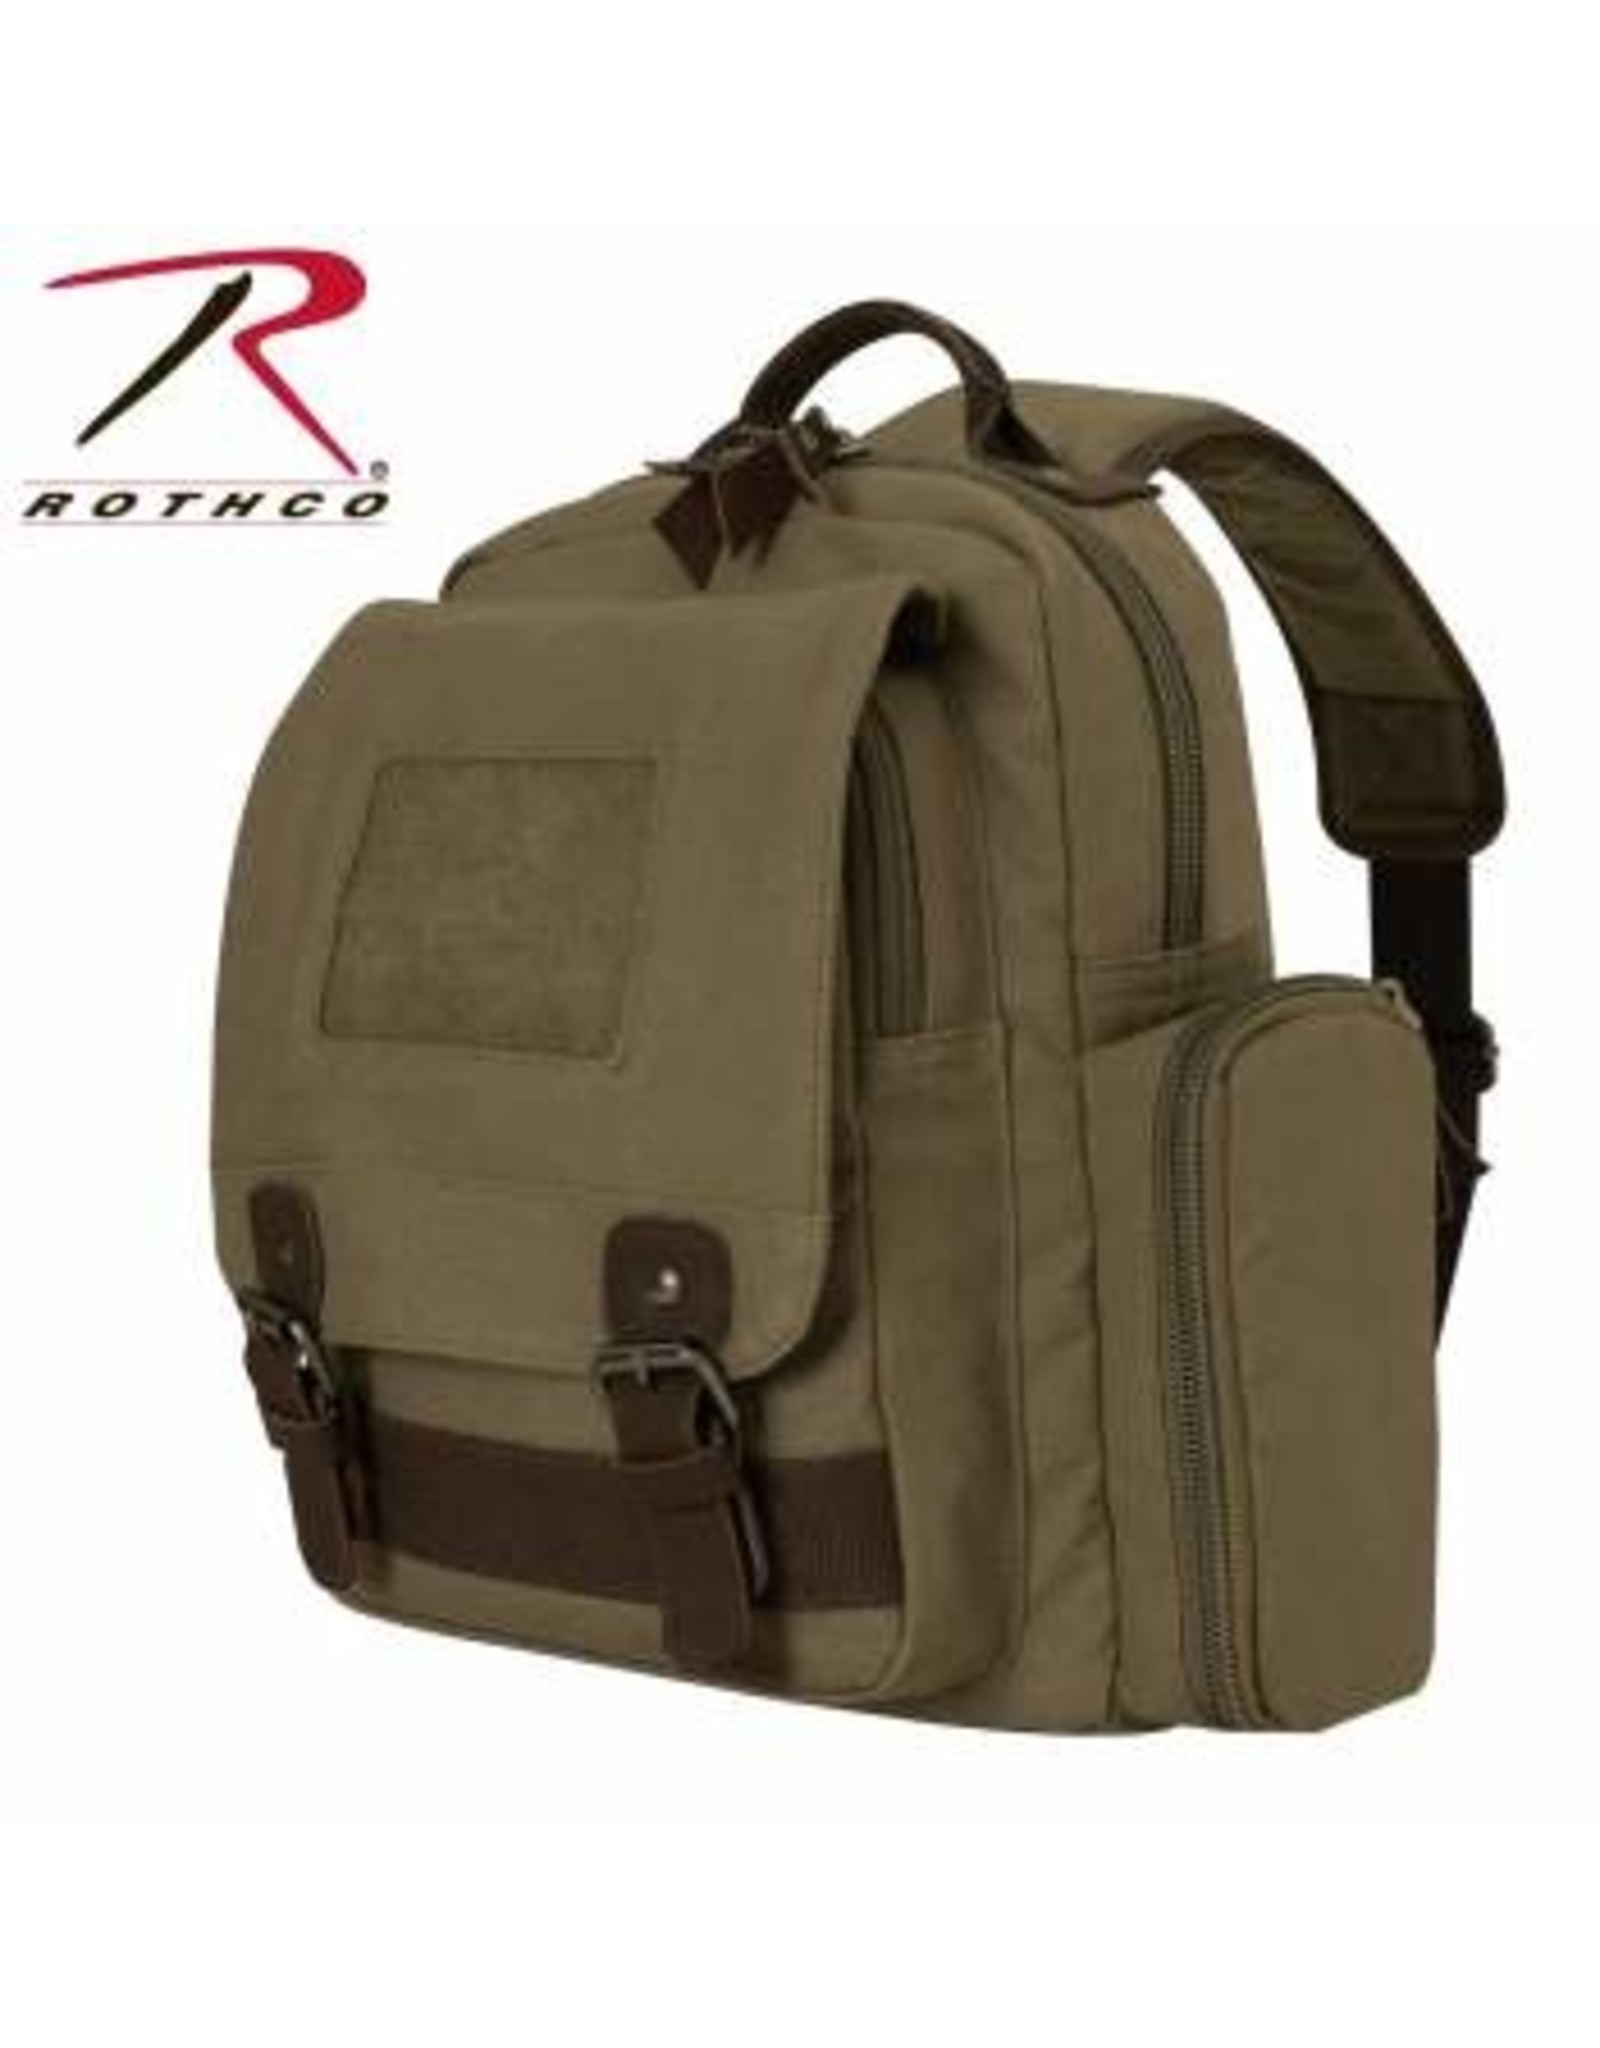 ROTHCO VINTAGE CANVAS SLING BACKPACK